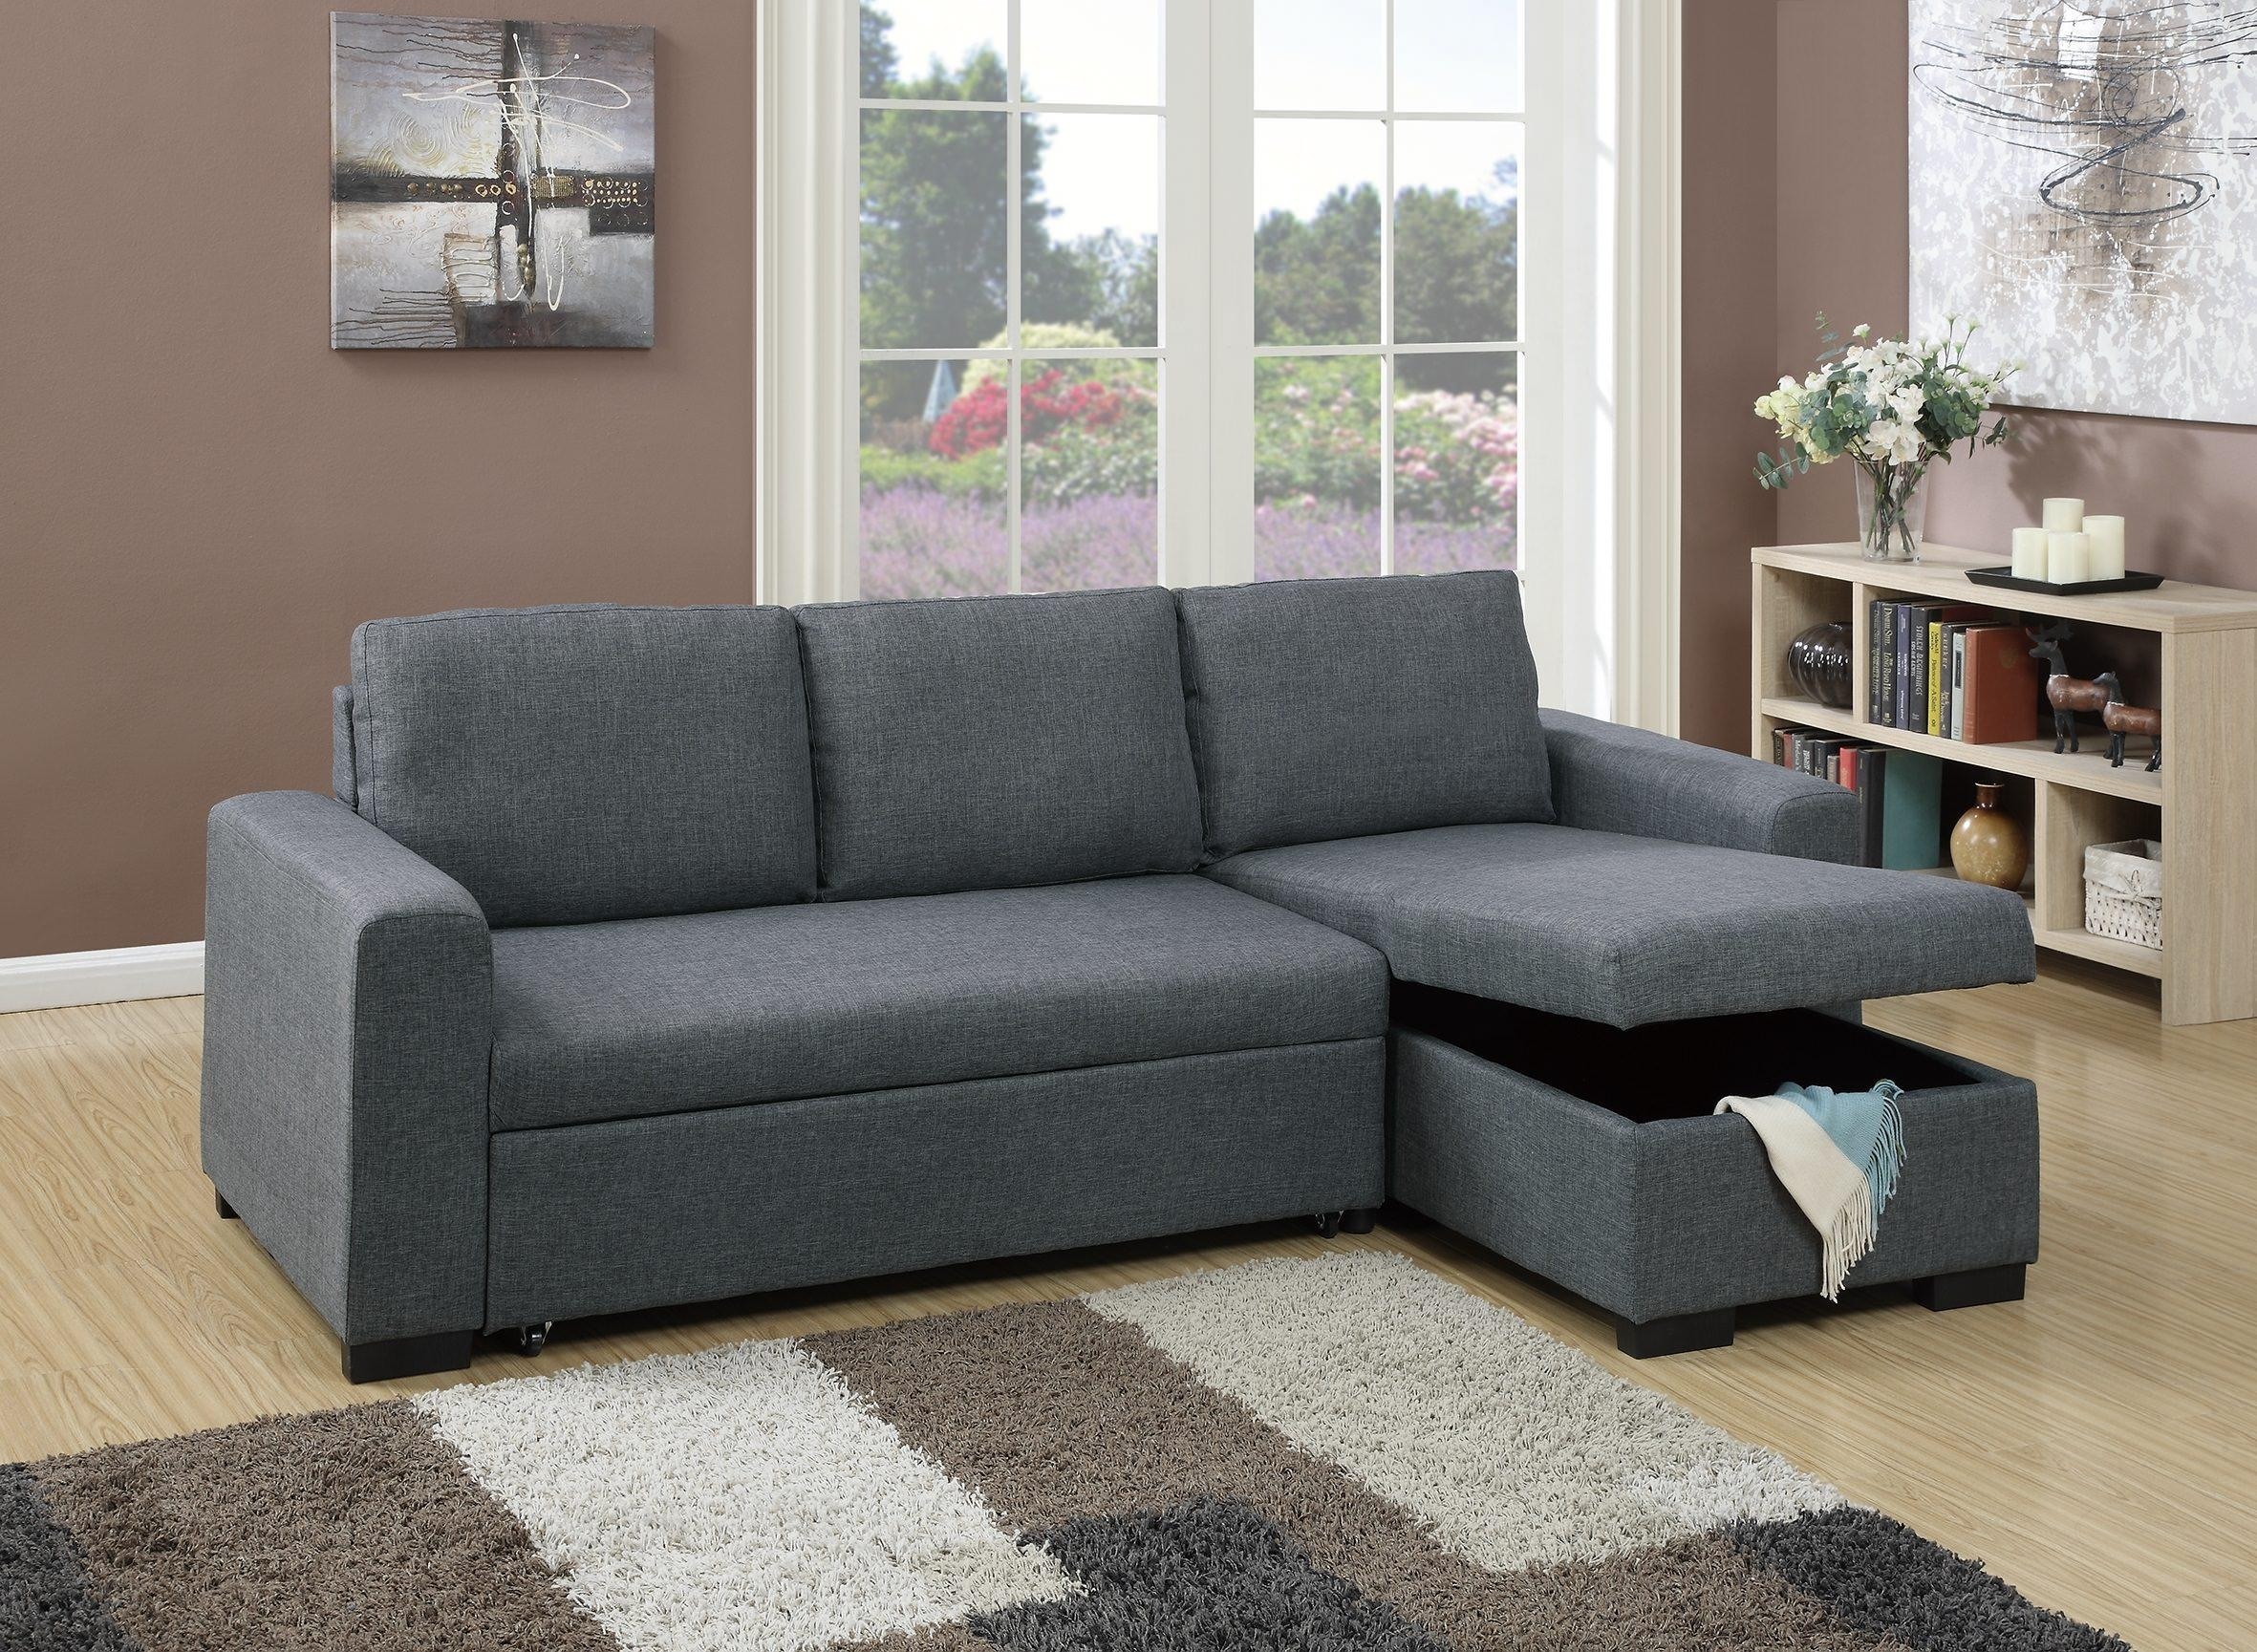 F6931 Blue Gray Convertible Sectional Sofapoundex In Convertible Sectional Sofas (Image 5 of 15)